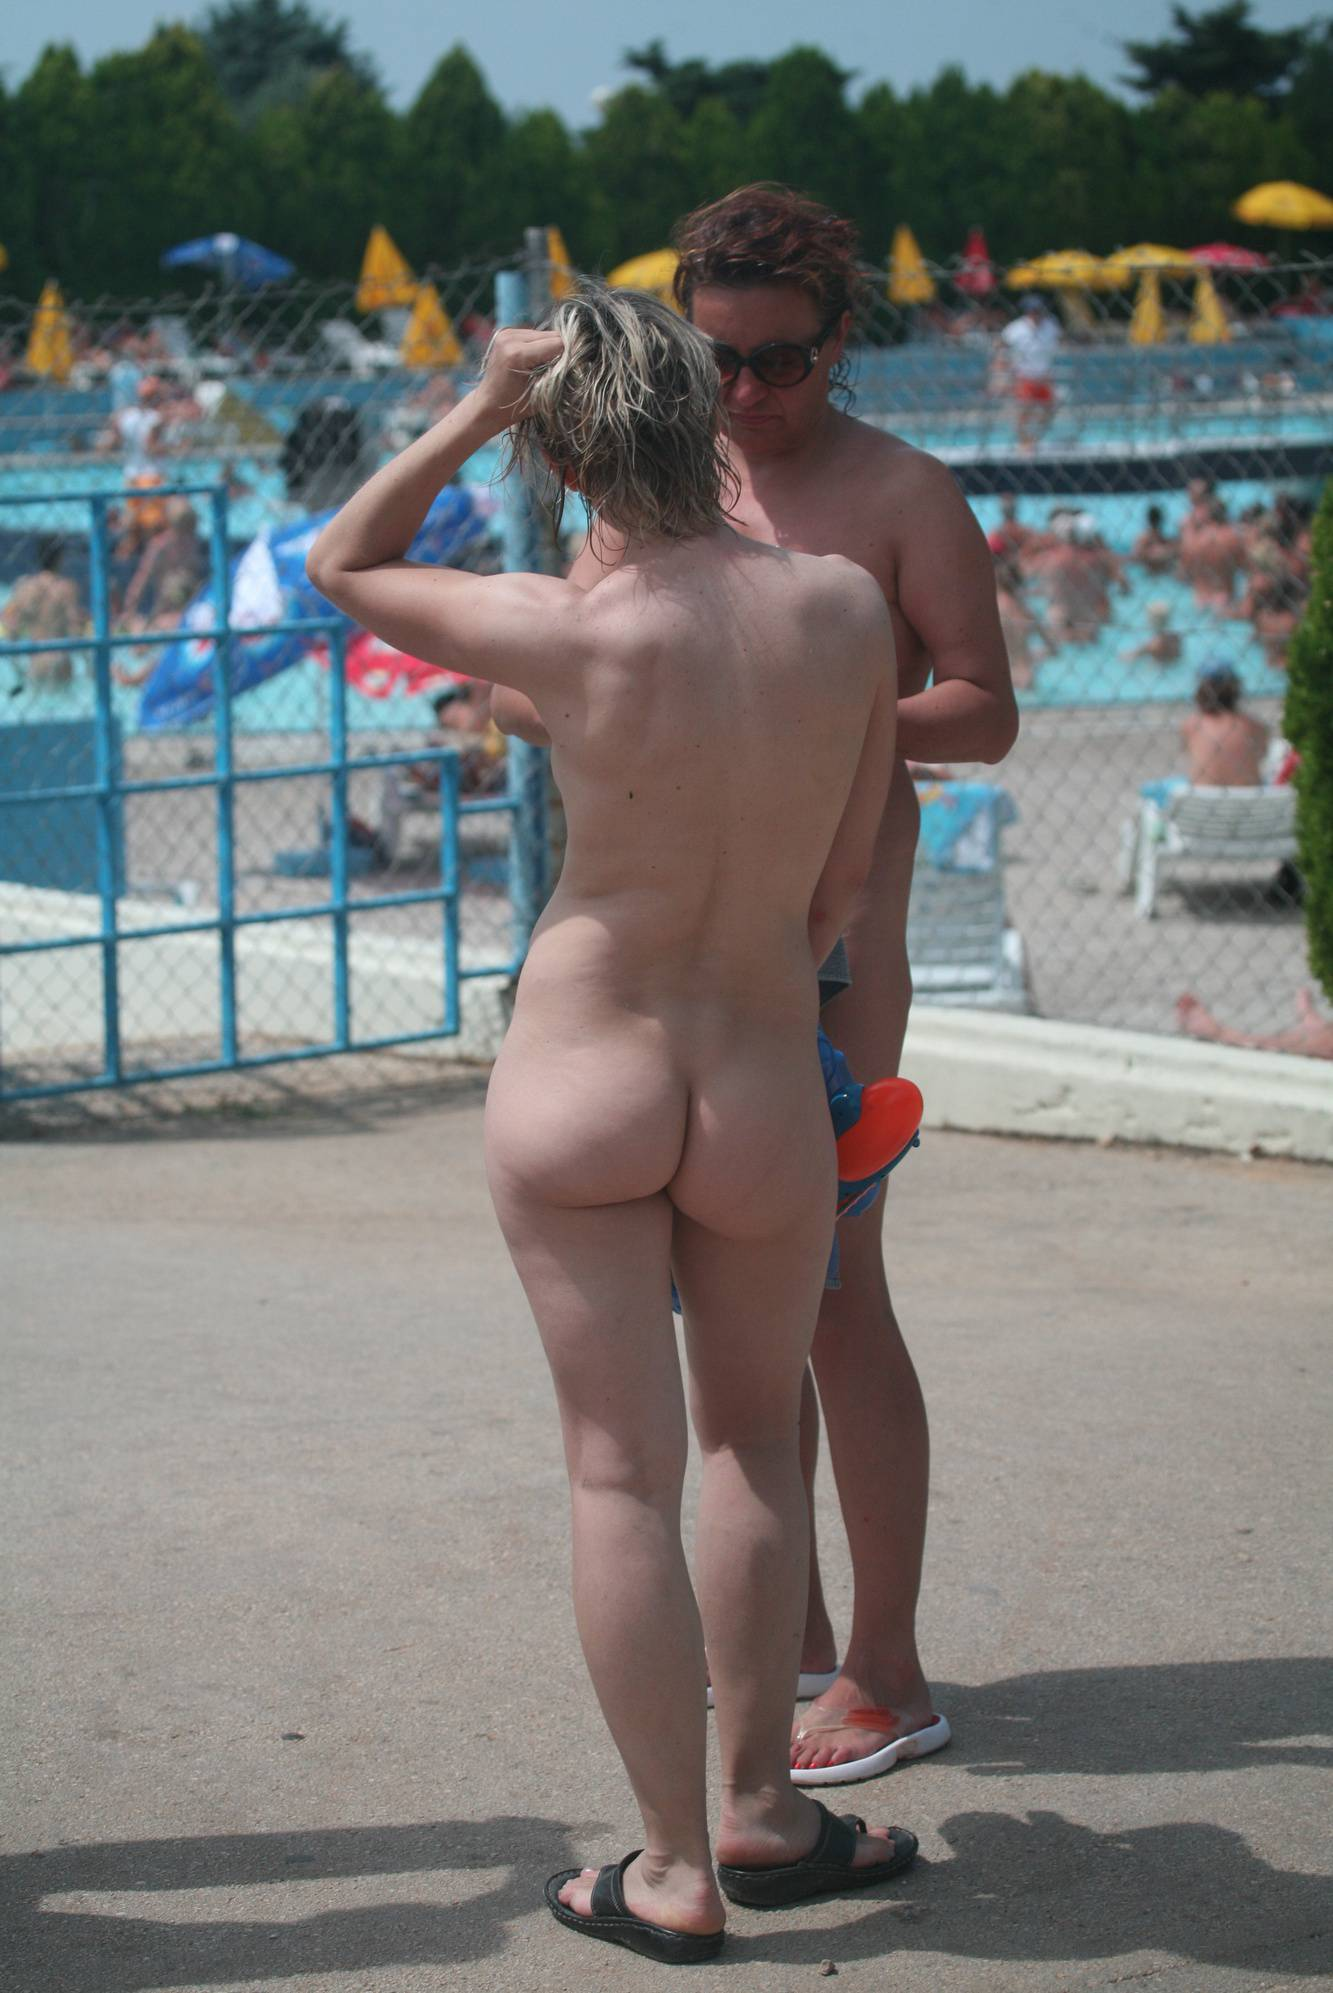 Naturist Pool Exit Stand-By - 1